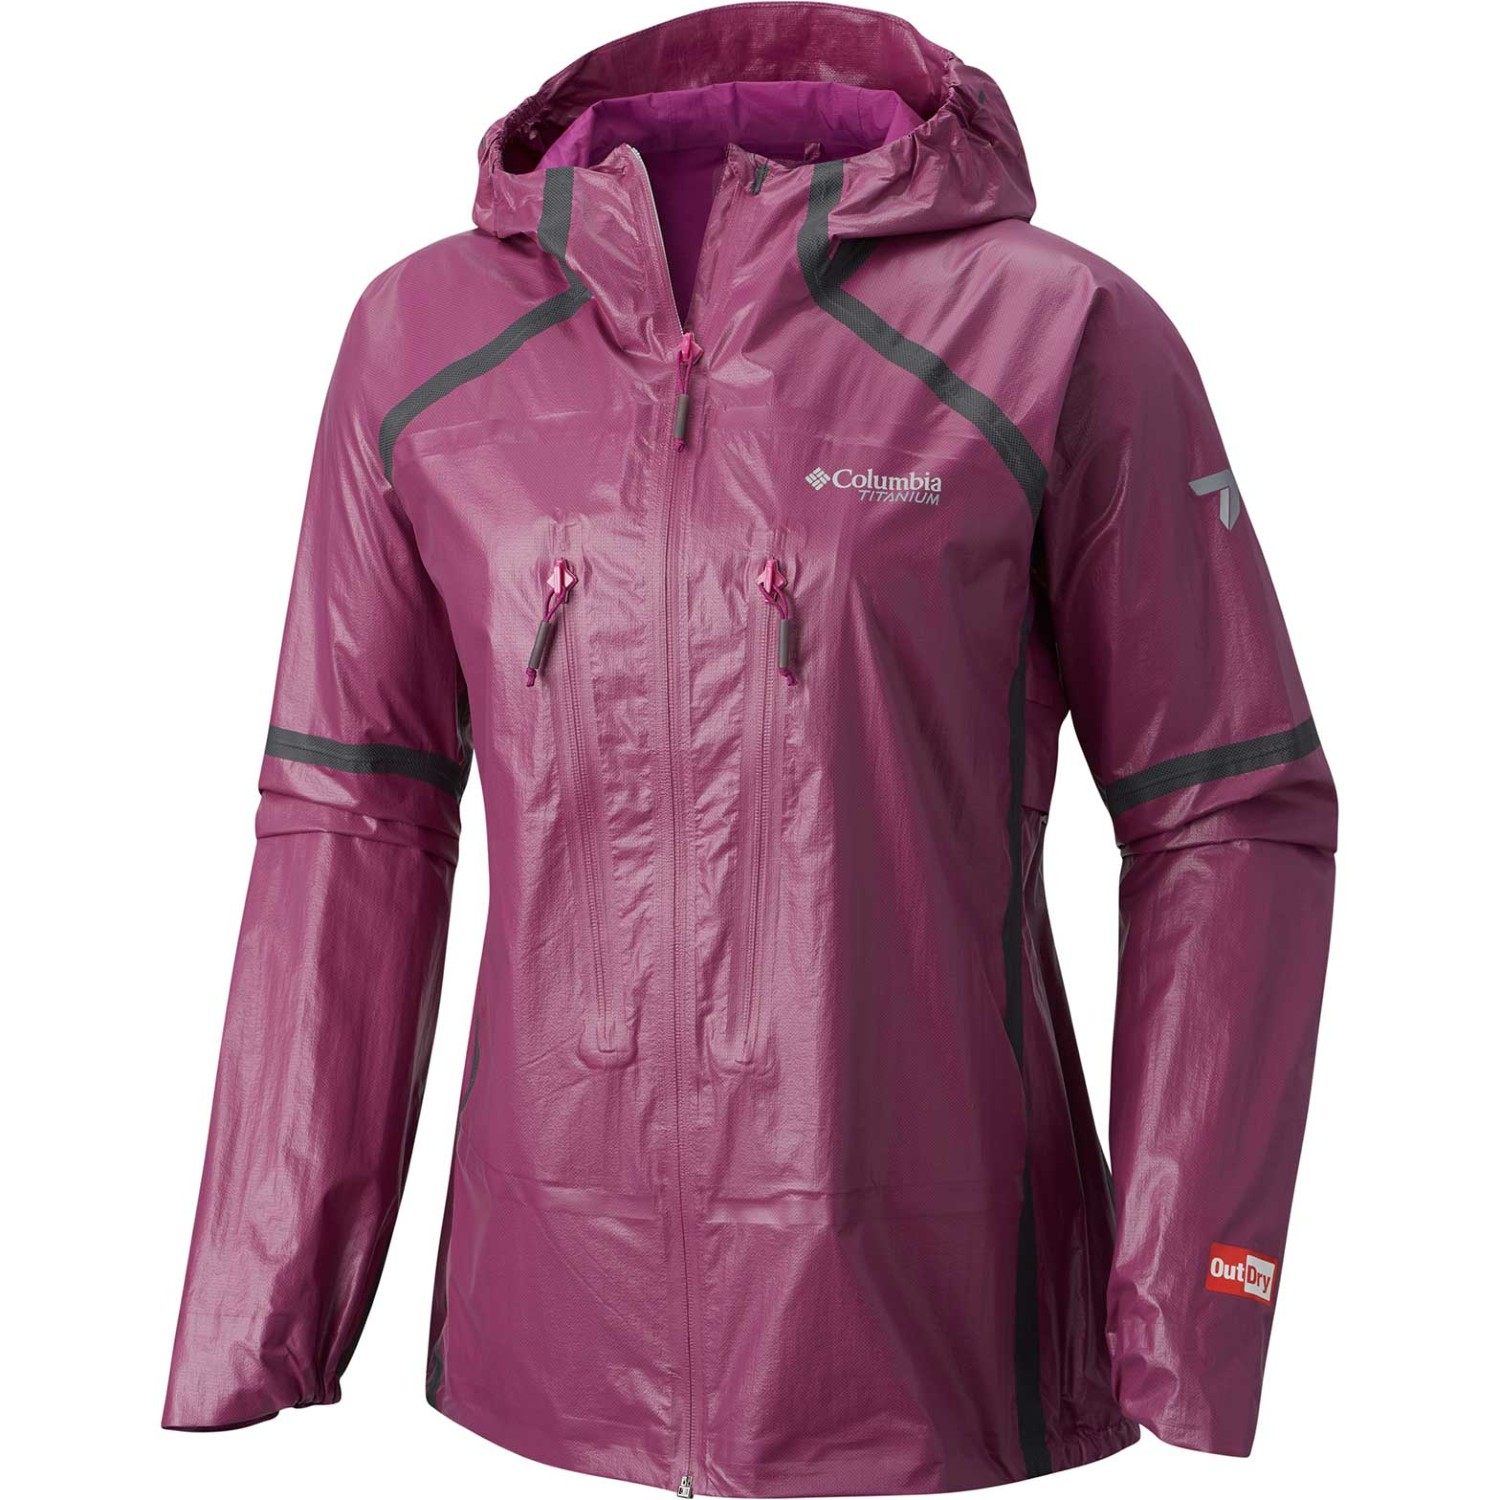 Columbia Outdry Ex Featherweight Shell Jacke available at Webtogs